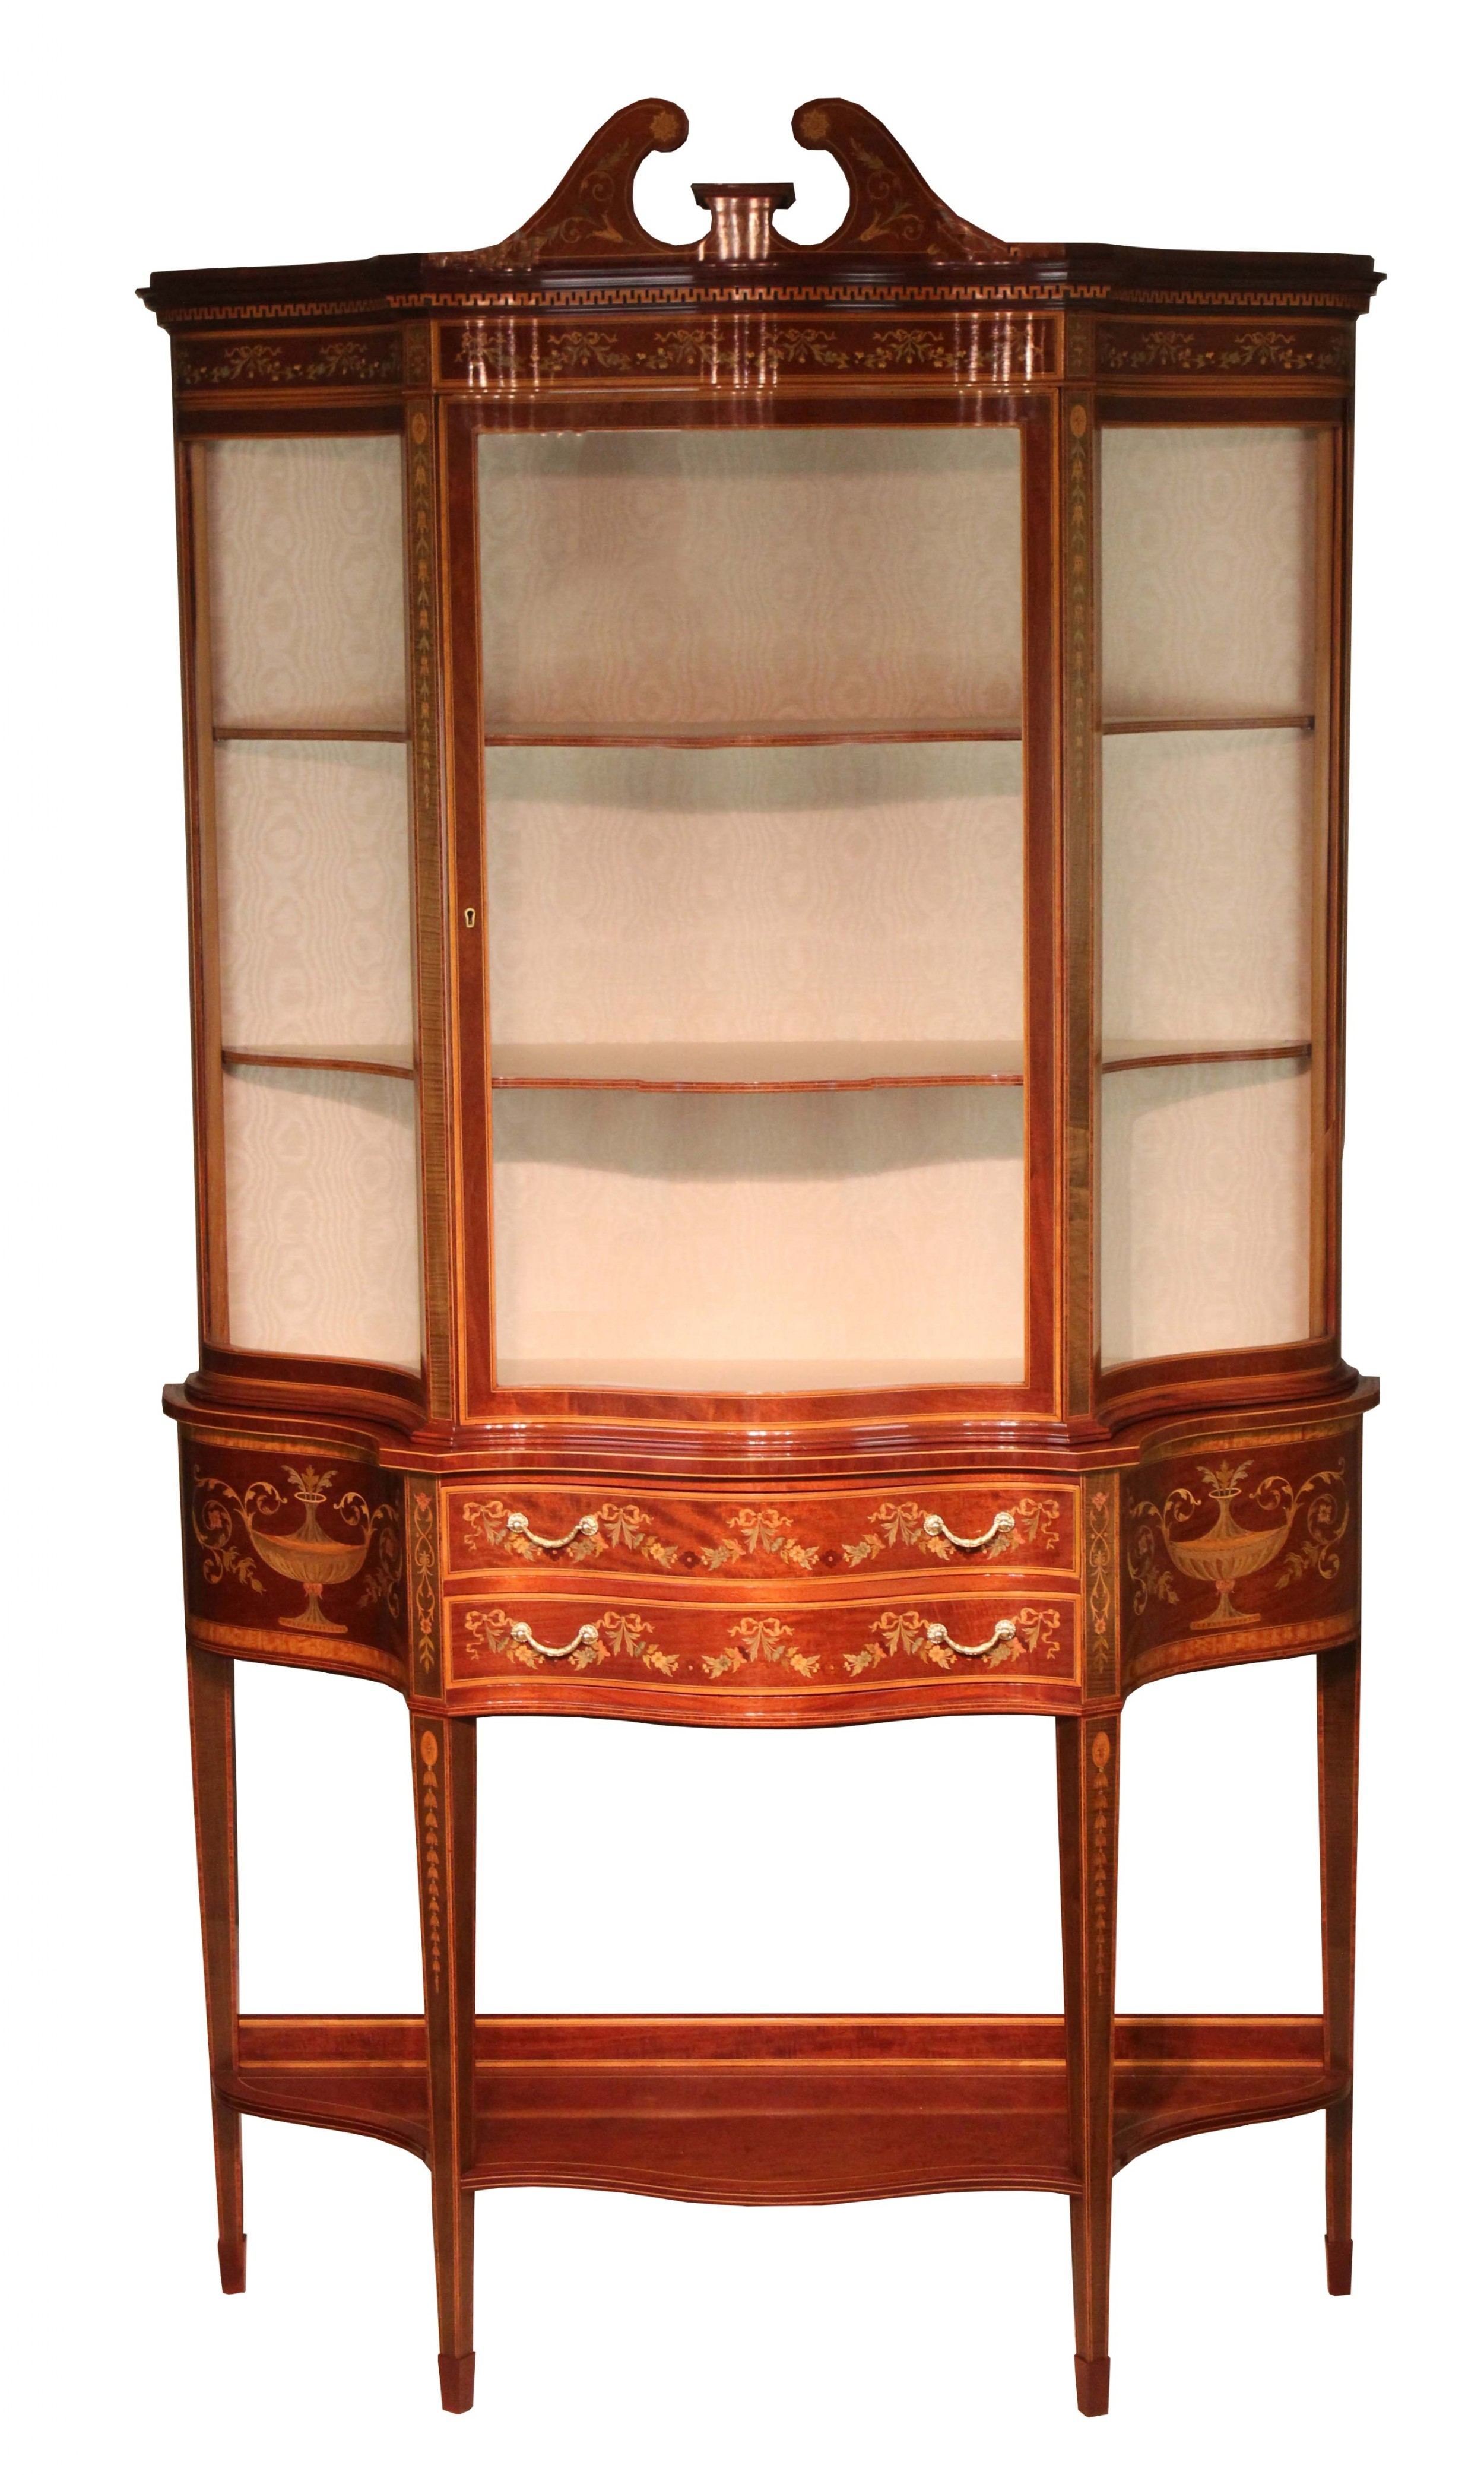 a fine late 19th century edwards roberts serpentine display cabinet